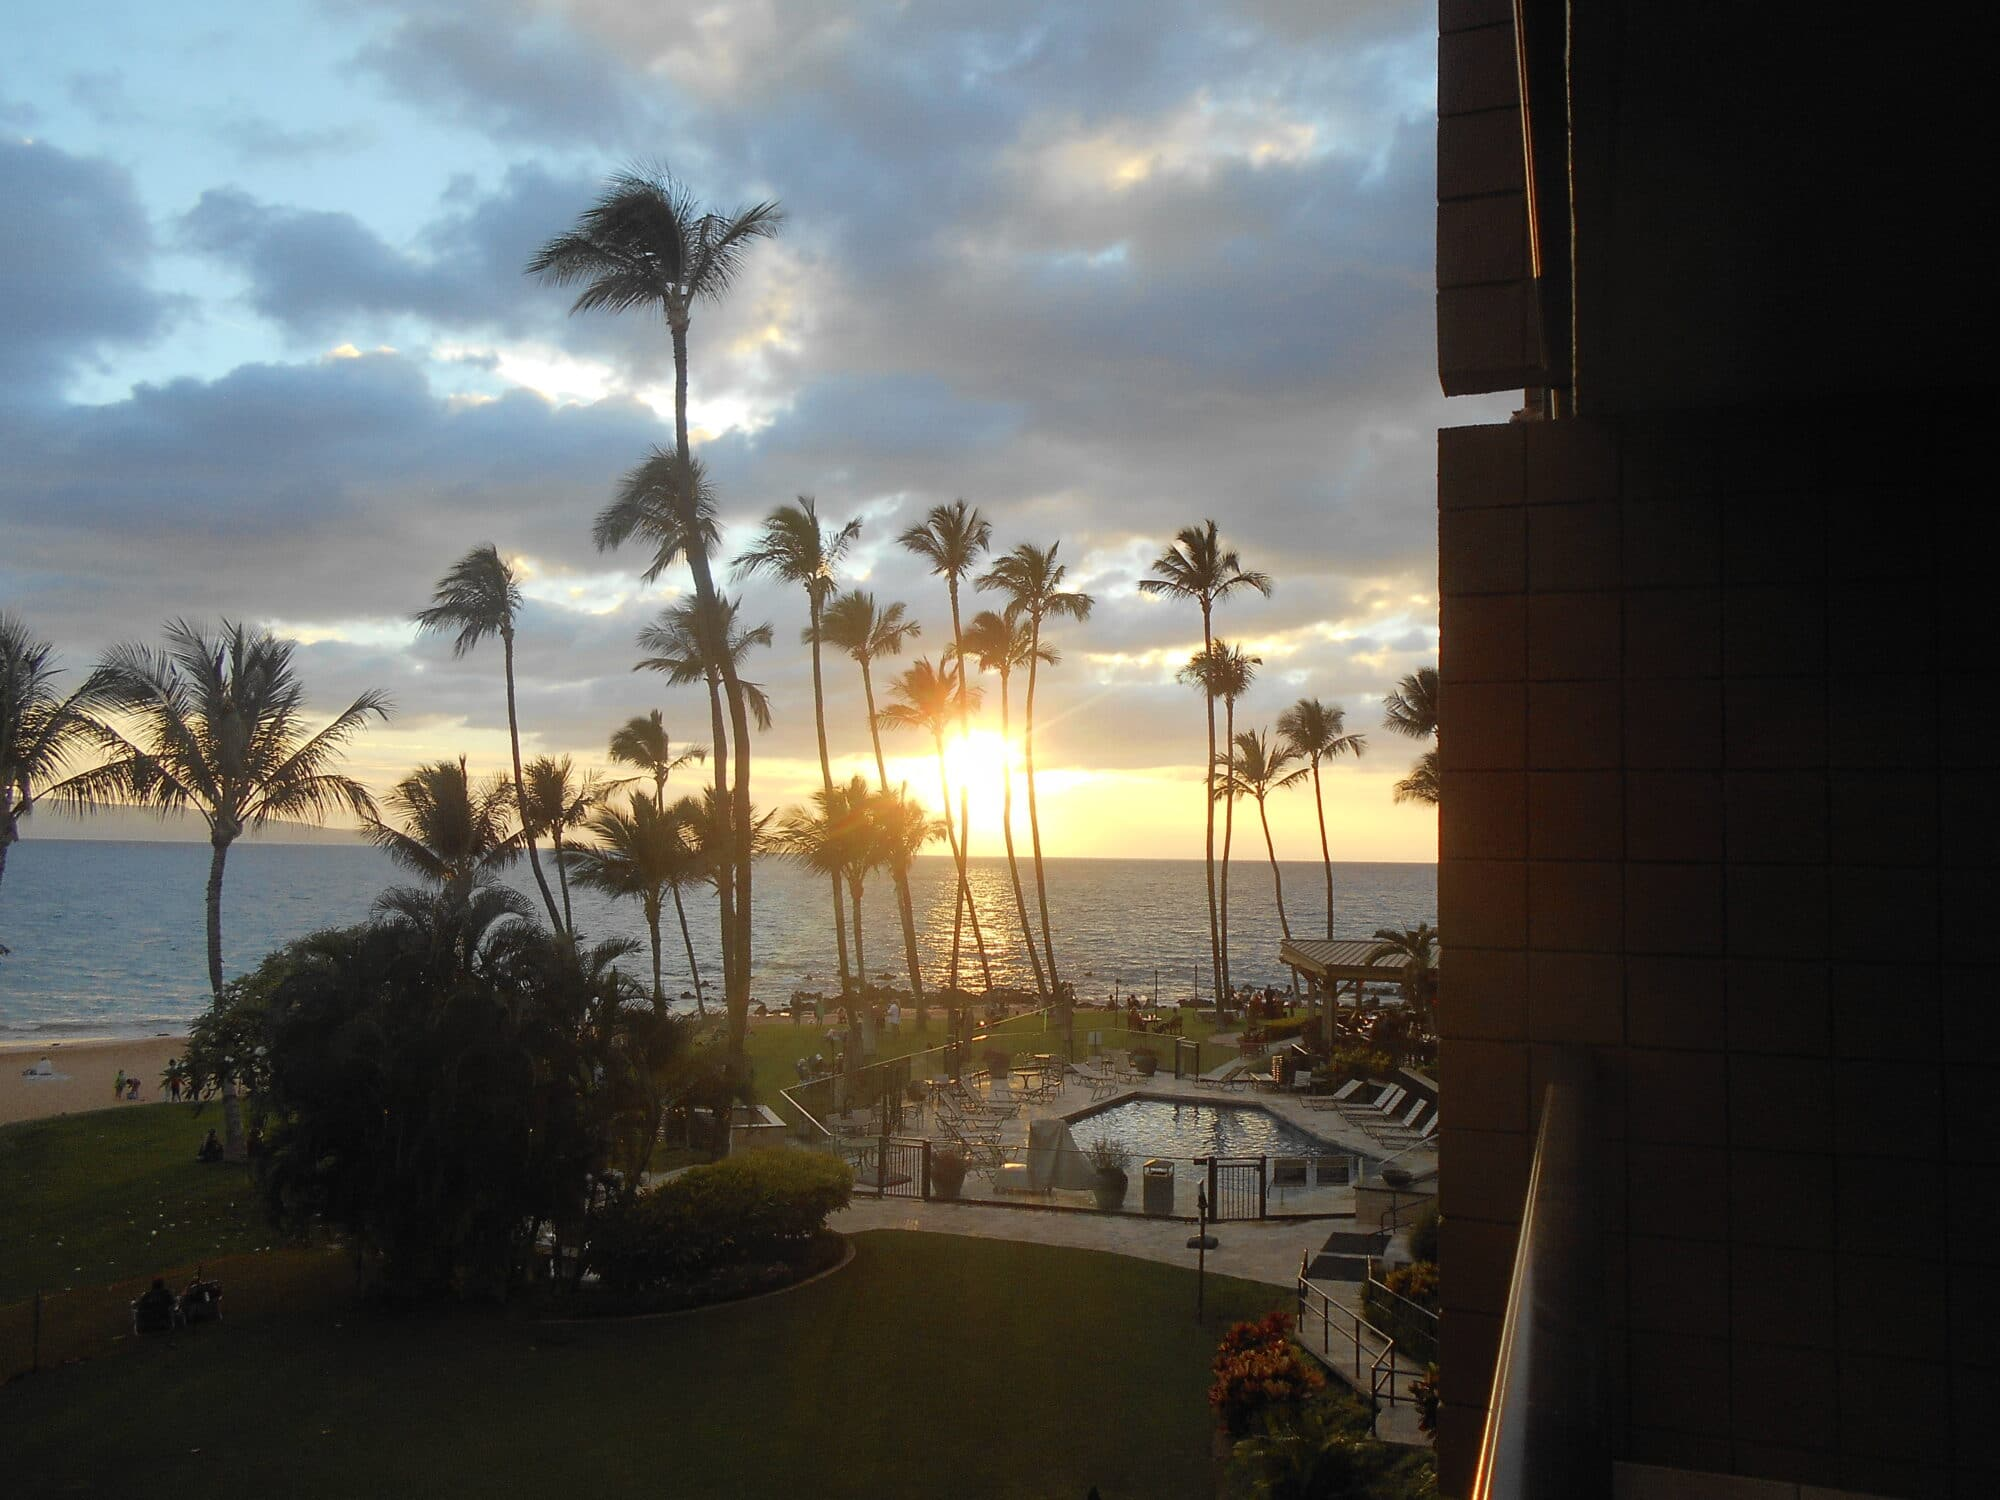 Maui visitor's primer for dealing with COVID19 rules